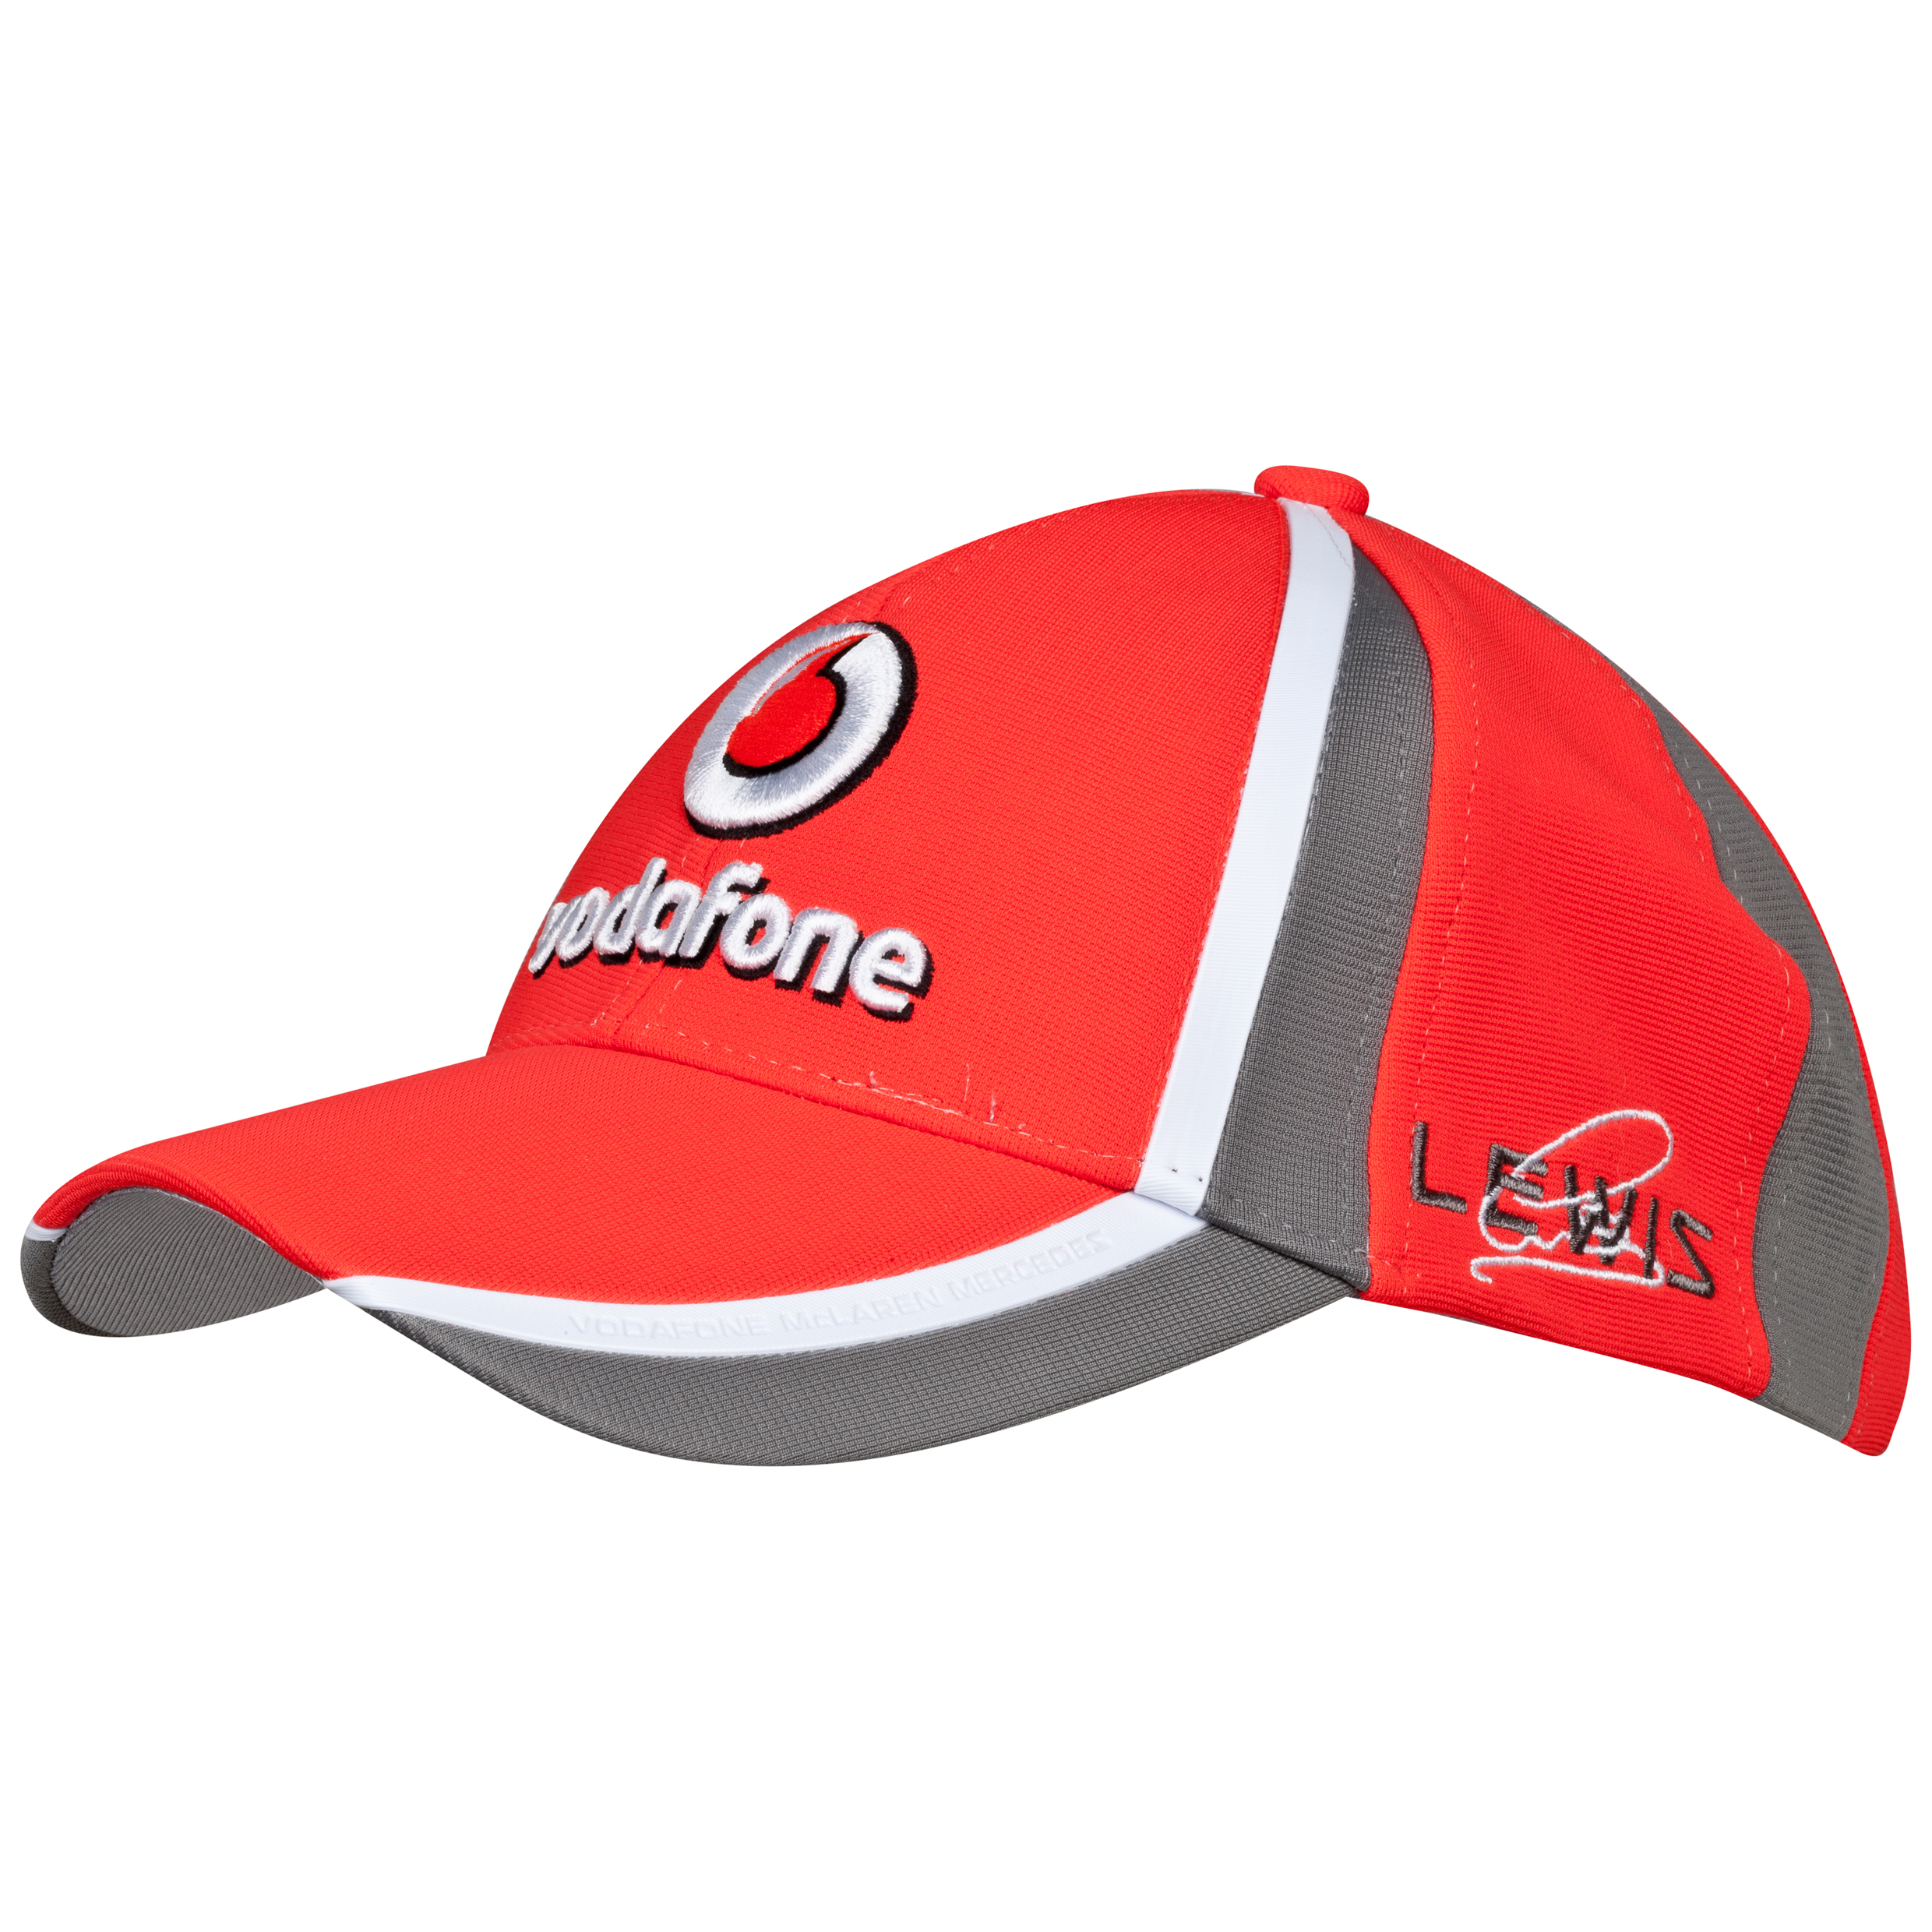 Vodafone McLaren Mercedes 2012 Lewis Hamilton Driver Cap